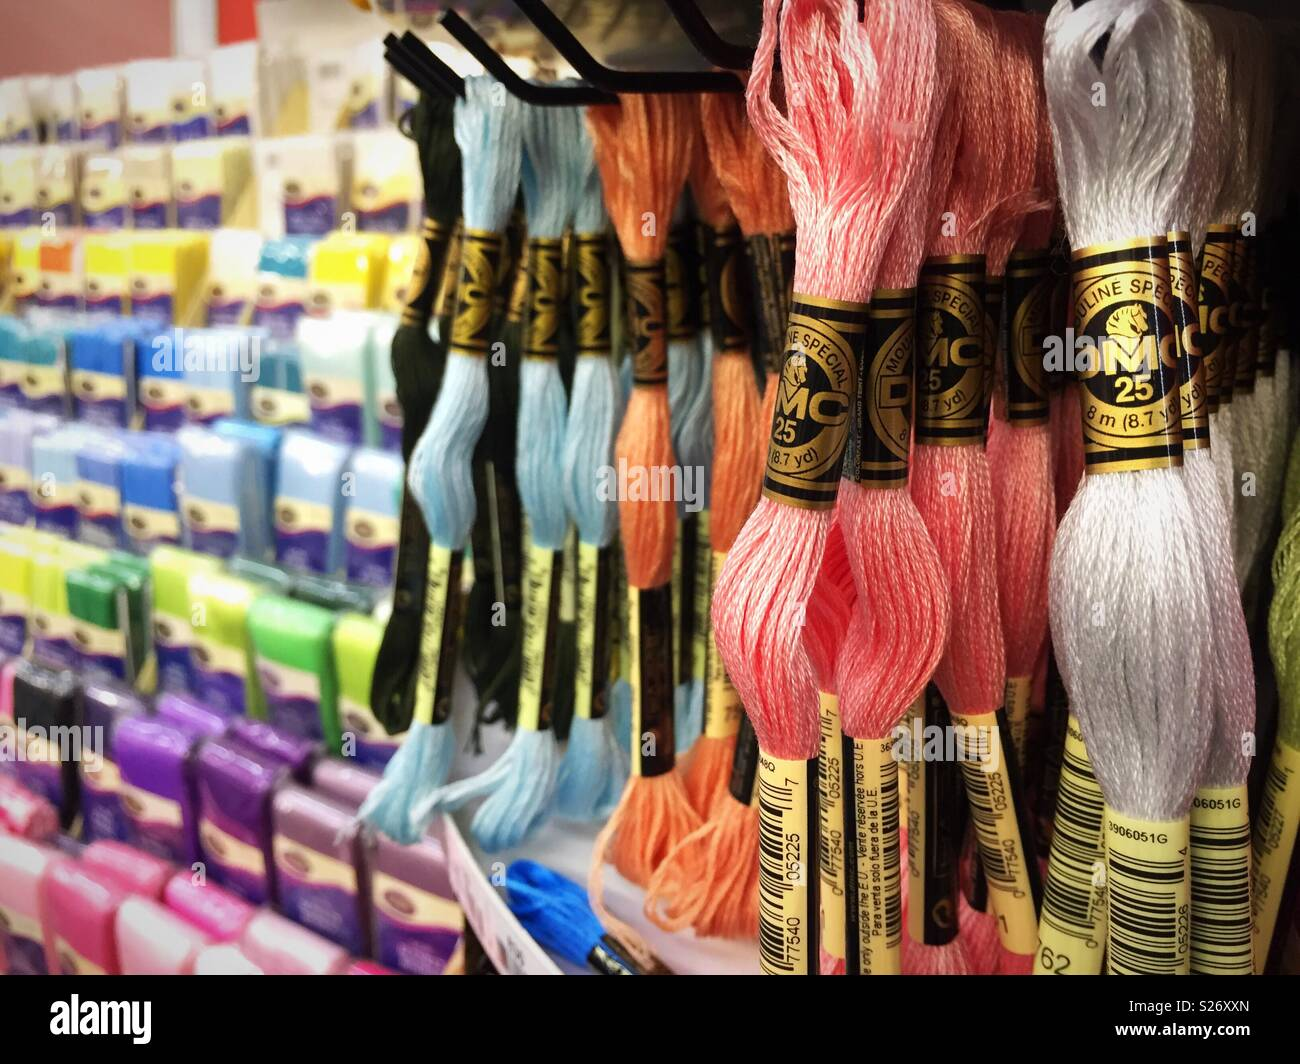 Embroidery Thread Display In The Garment District Nyc Usa Stock